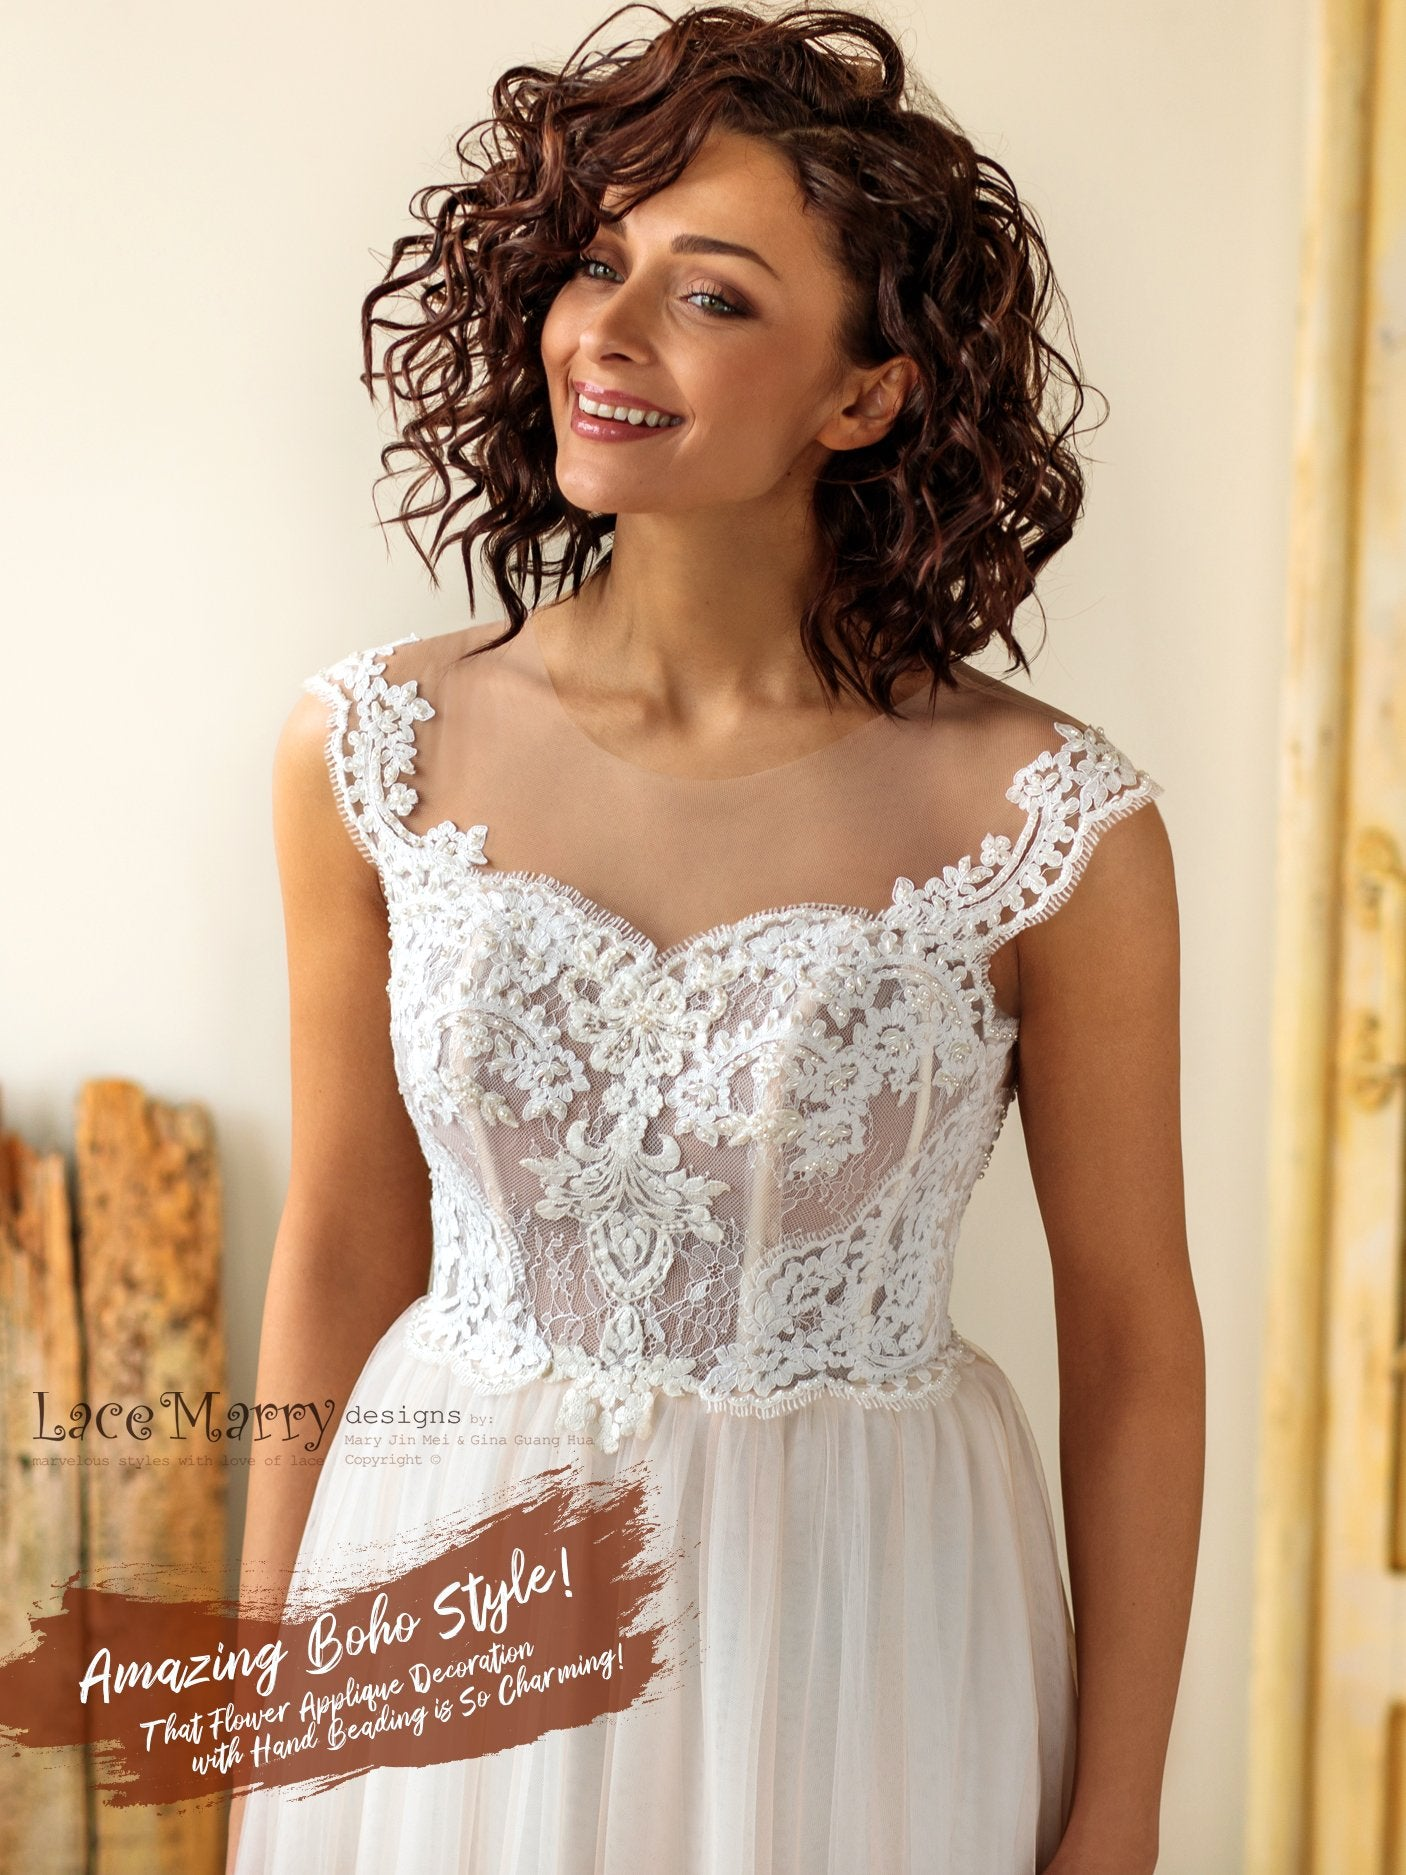 Charming Boho Wedding Dress with Pearl Beaded Illusion Neckline